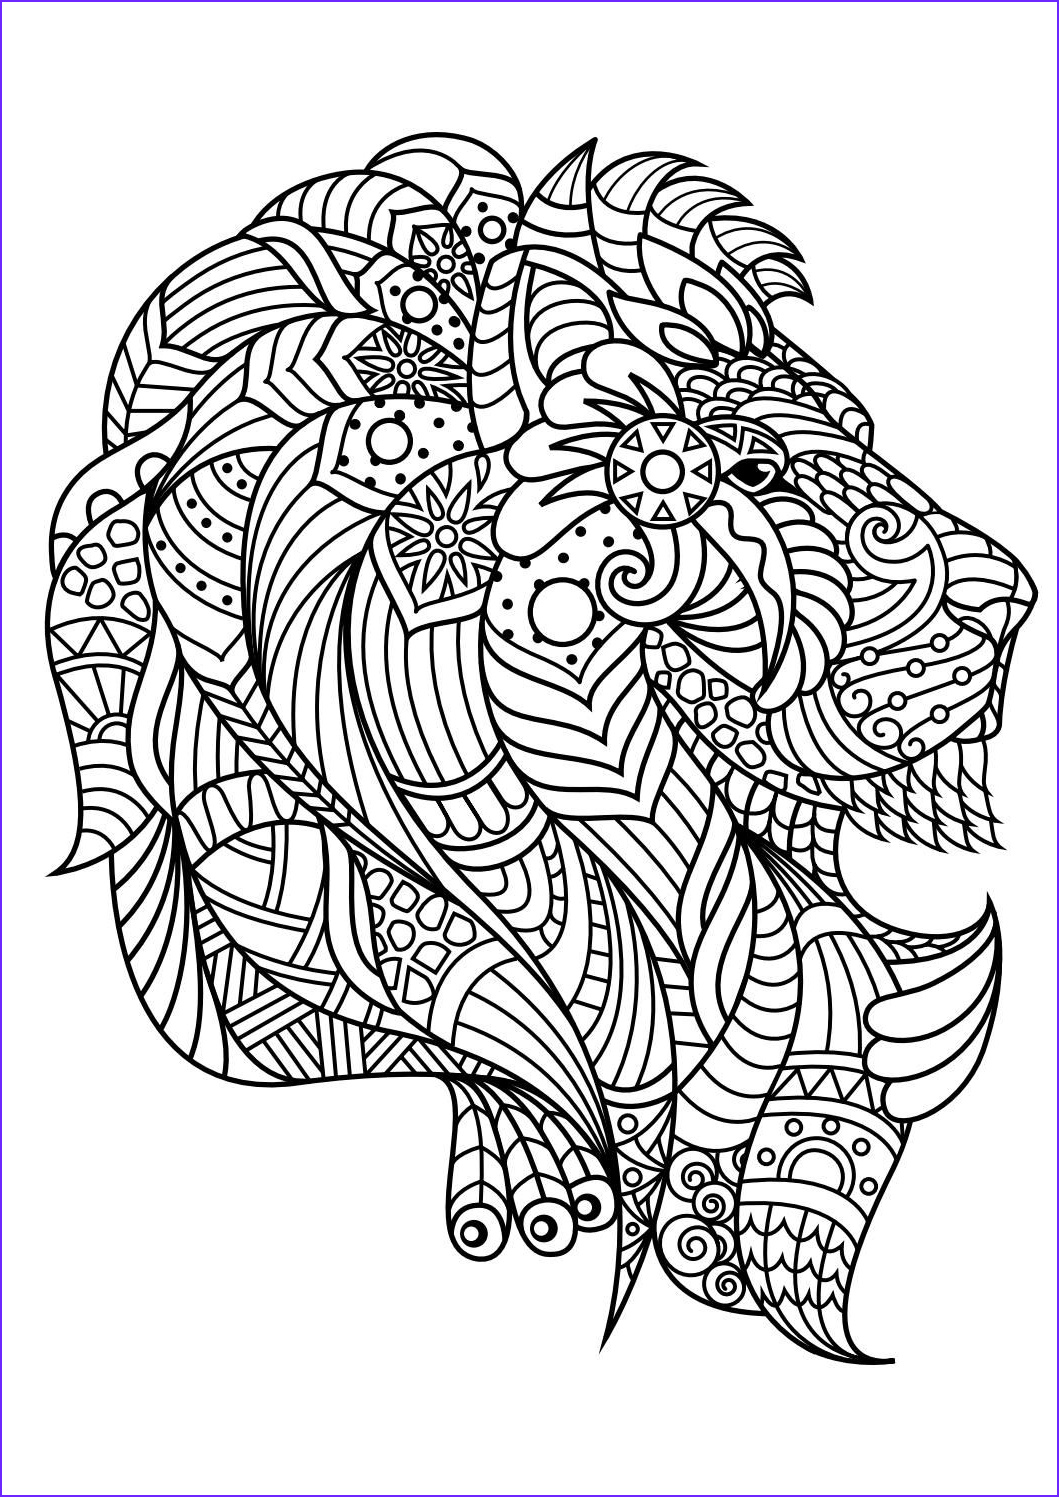 Animal Coloring Pages for Adults Luxury Photos Animal Coloring Pages Pdf Coloring Animals